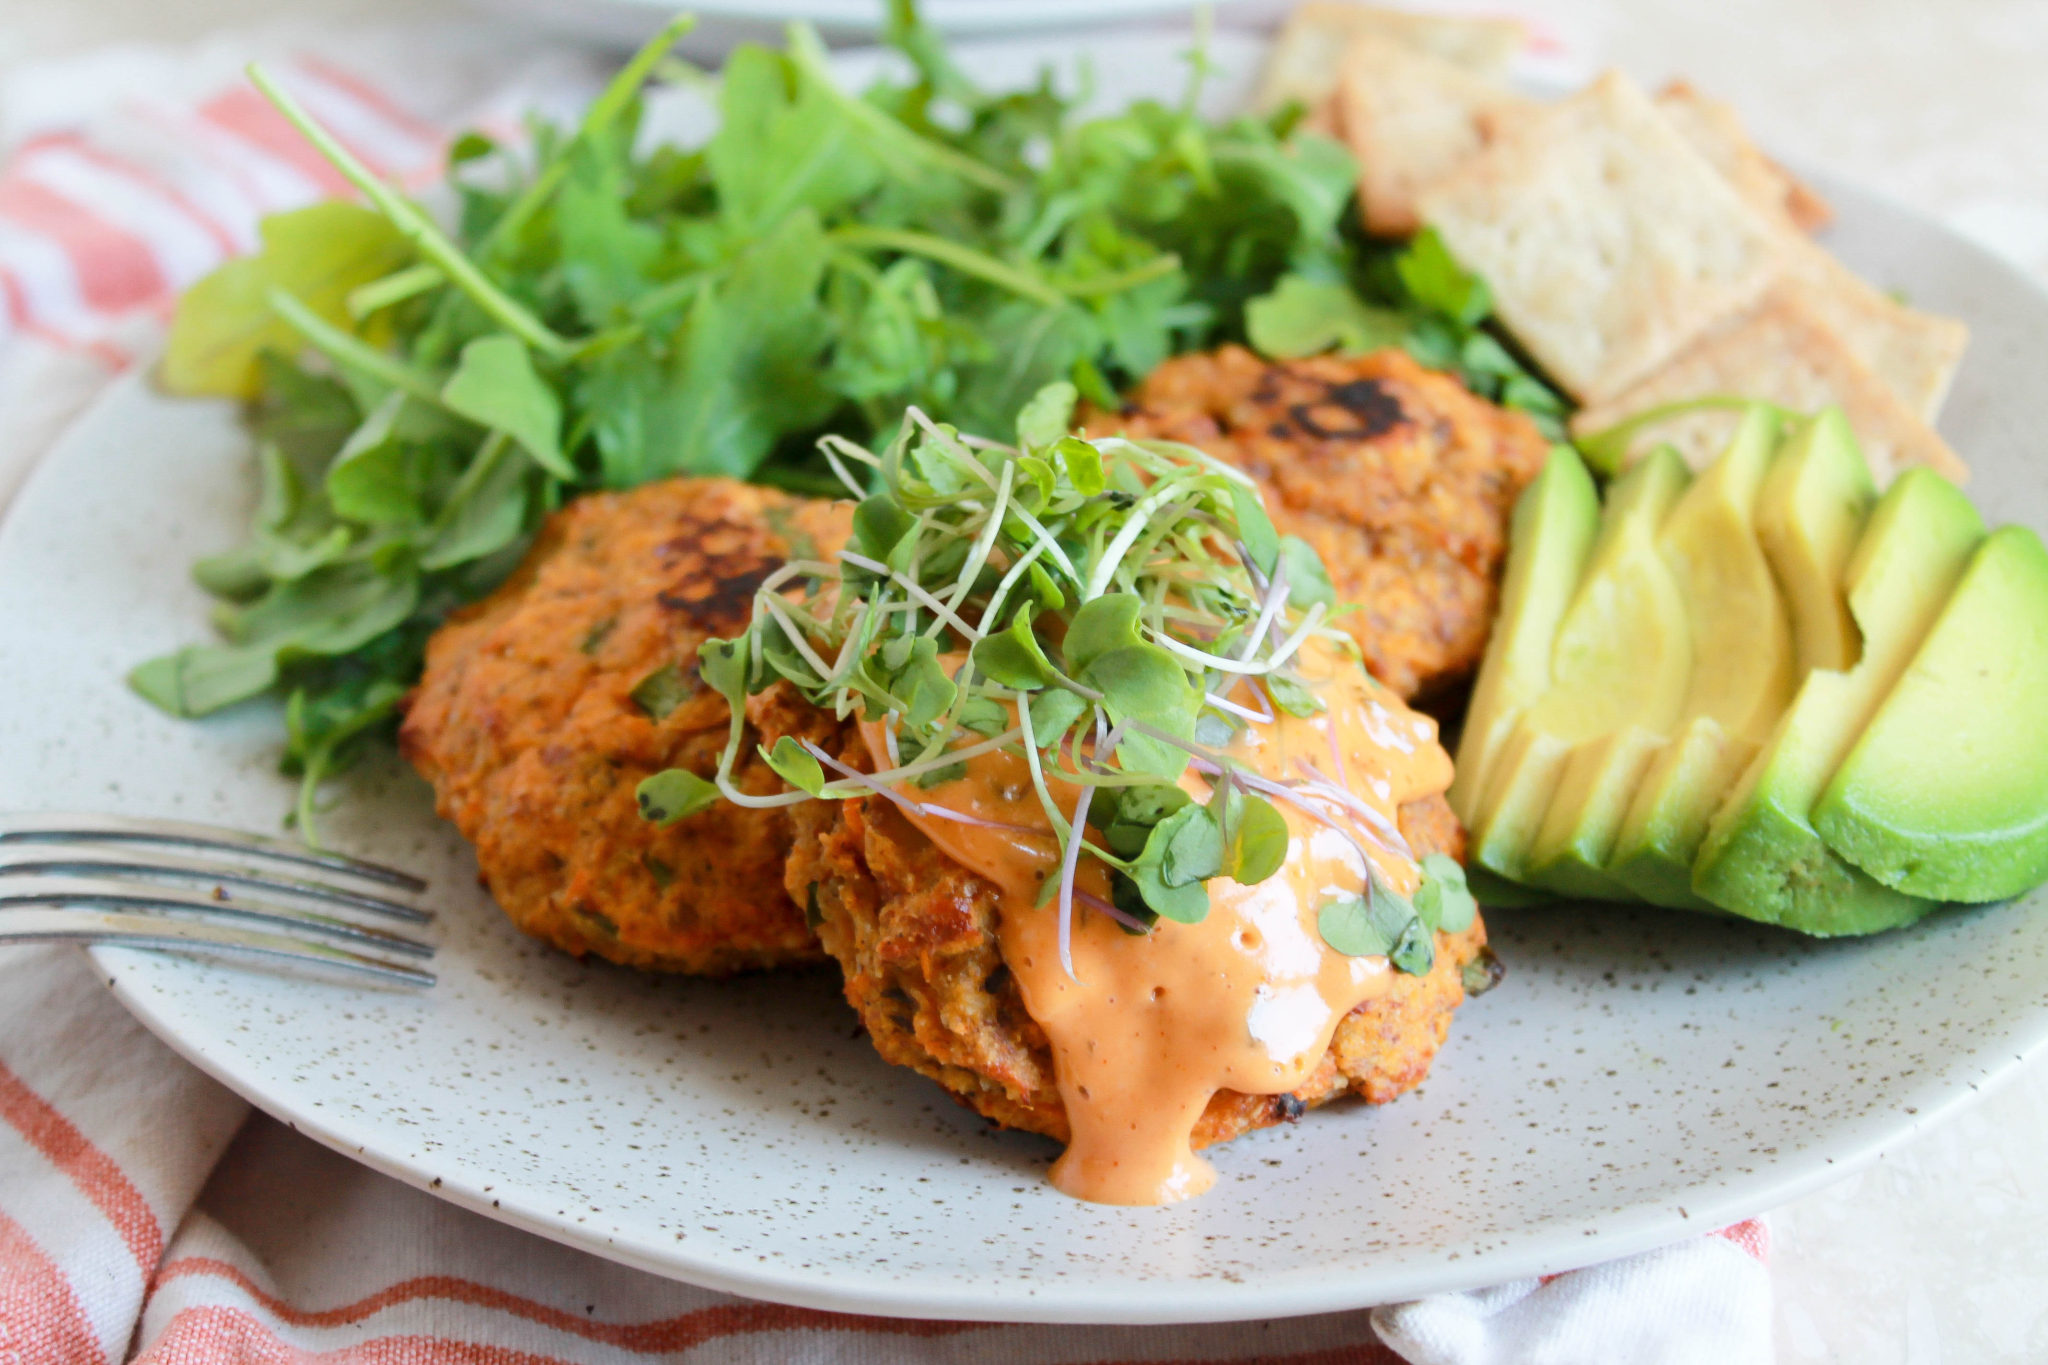 Paleo Sweet Potato Salmon Patties (Whole 30 Compliant)